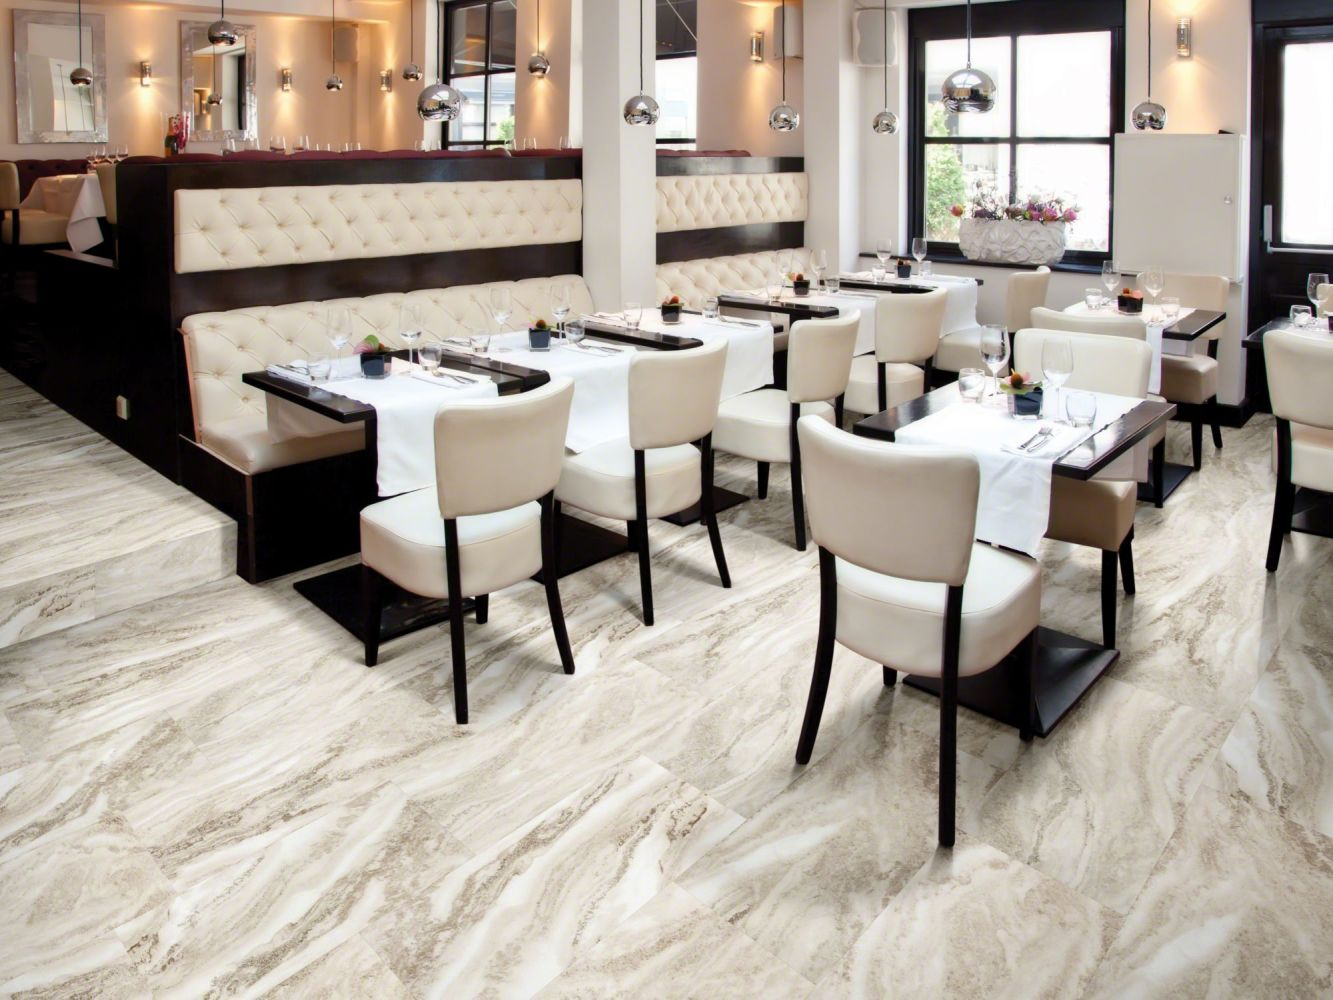 Shaw Floors 5th And Main Ocean Avenue Elite Carmelo 00239_5M201